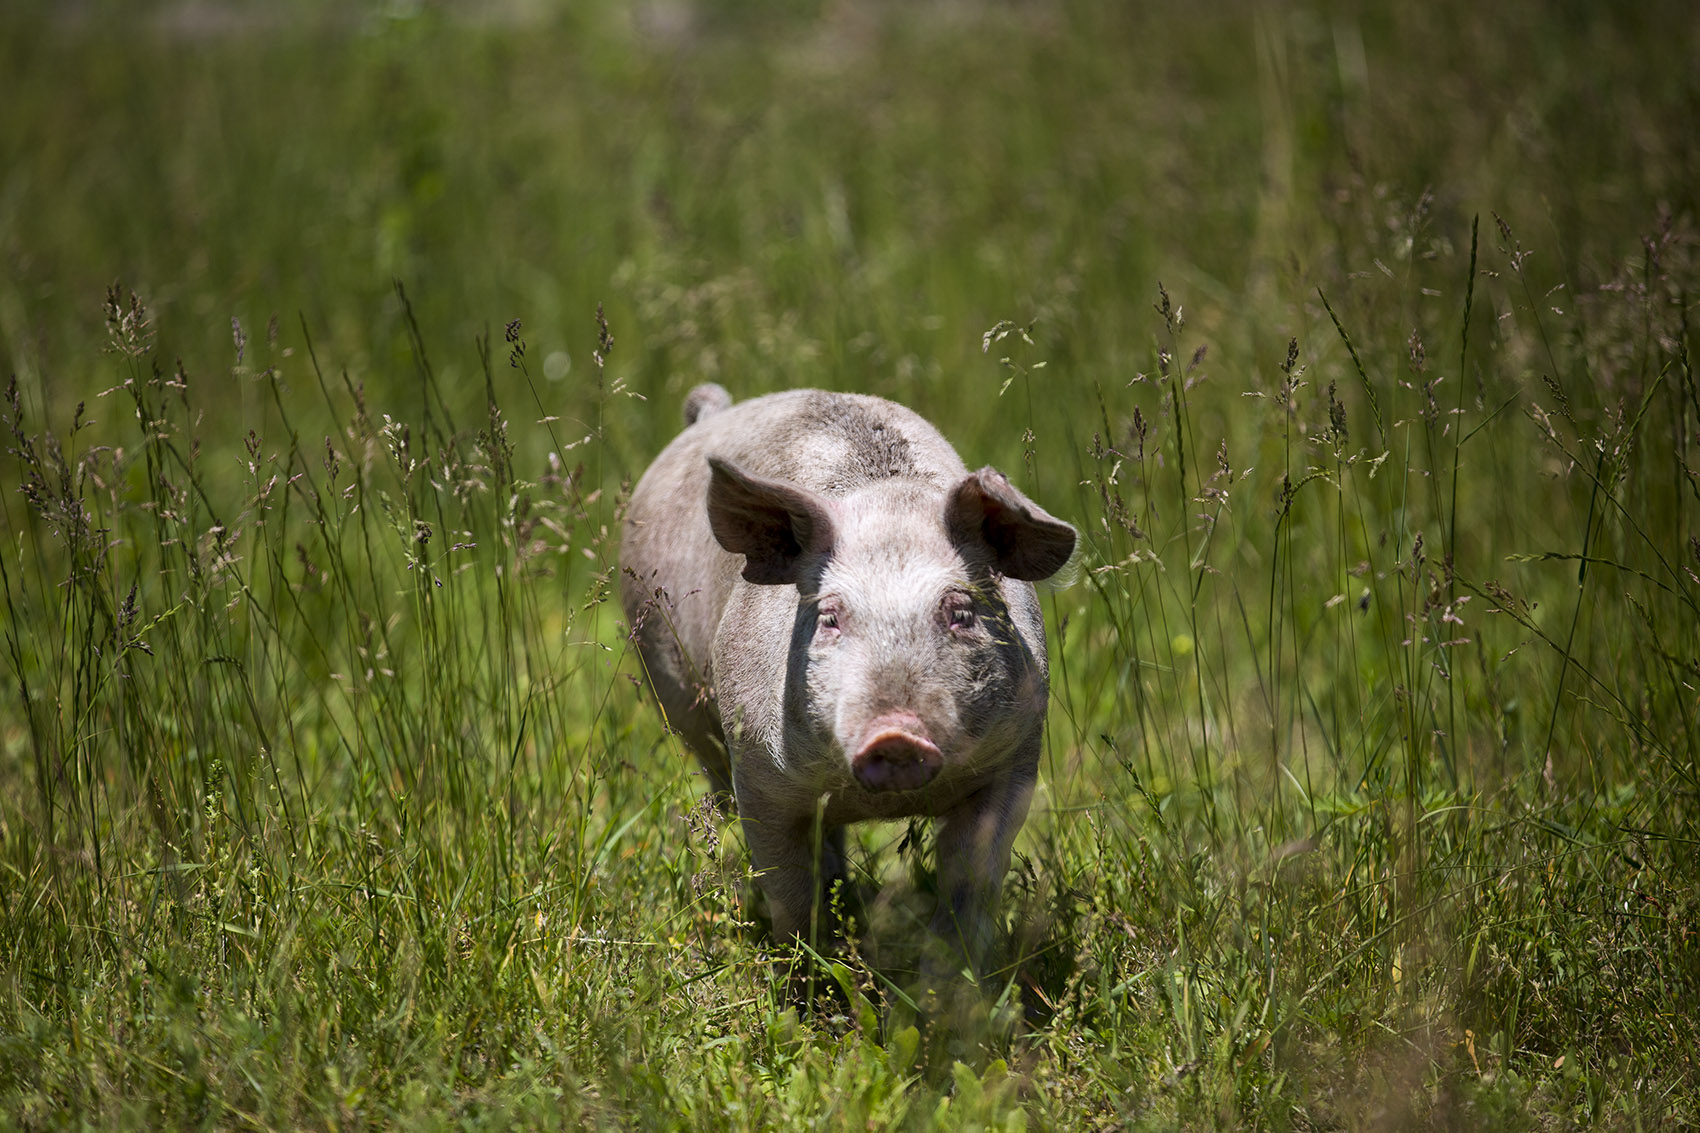 One of Copicut Farms pigs roaming around freely through the pasture. (Jesse Costa/WBUR)